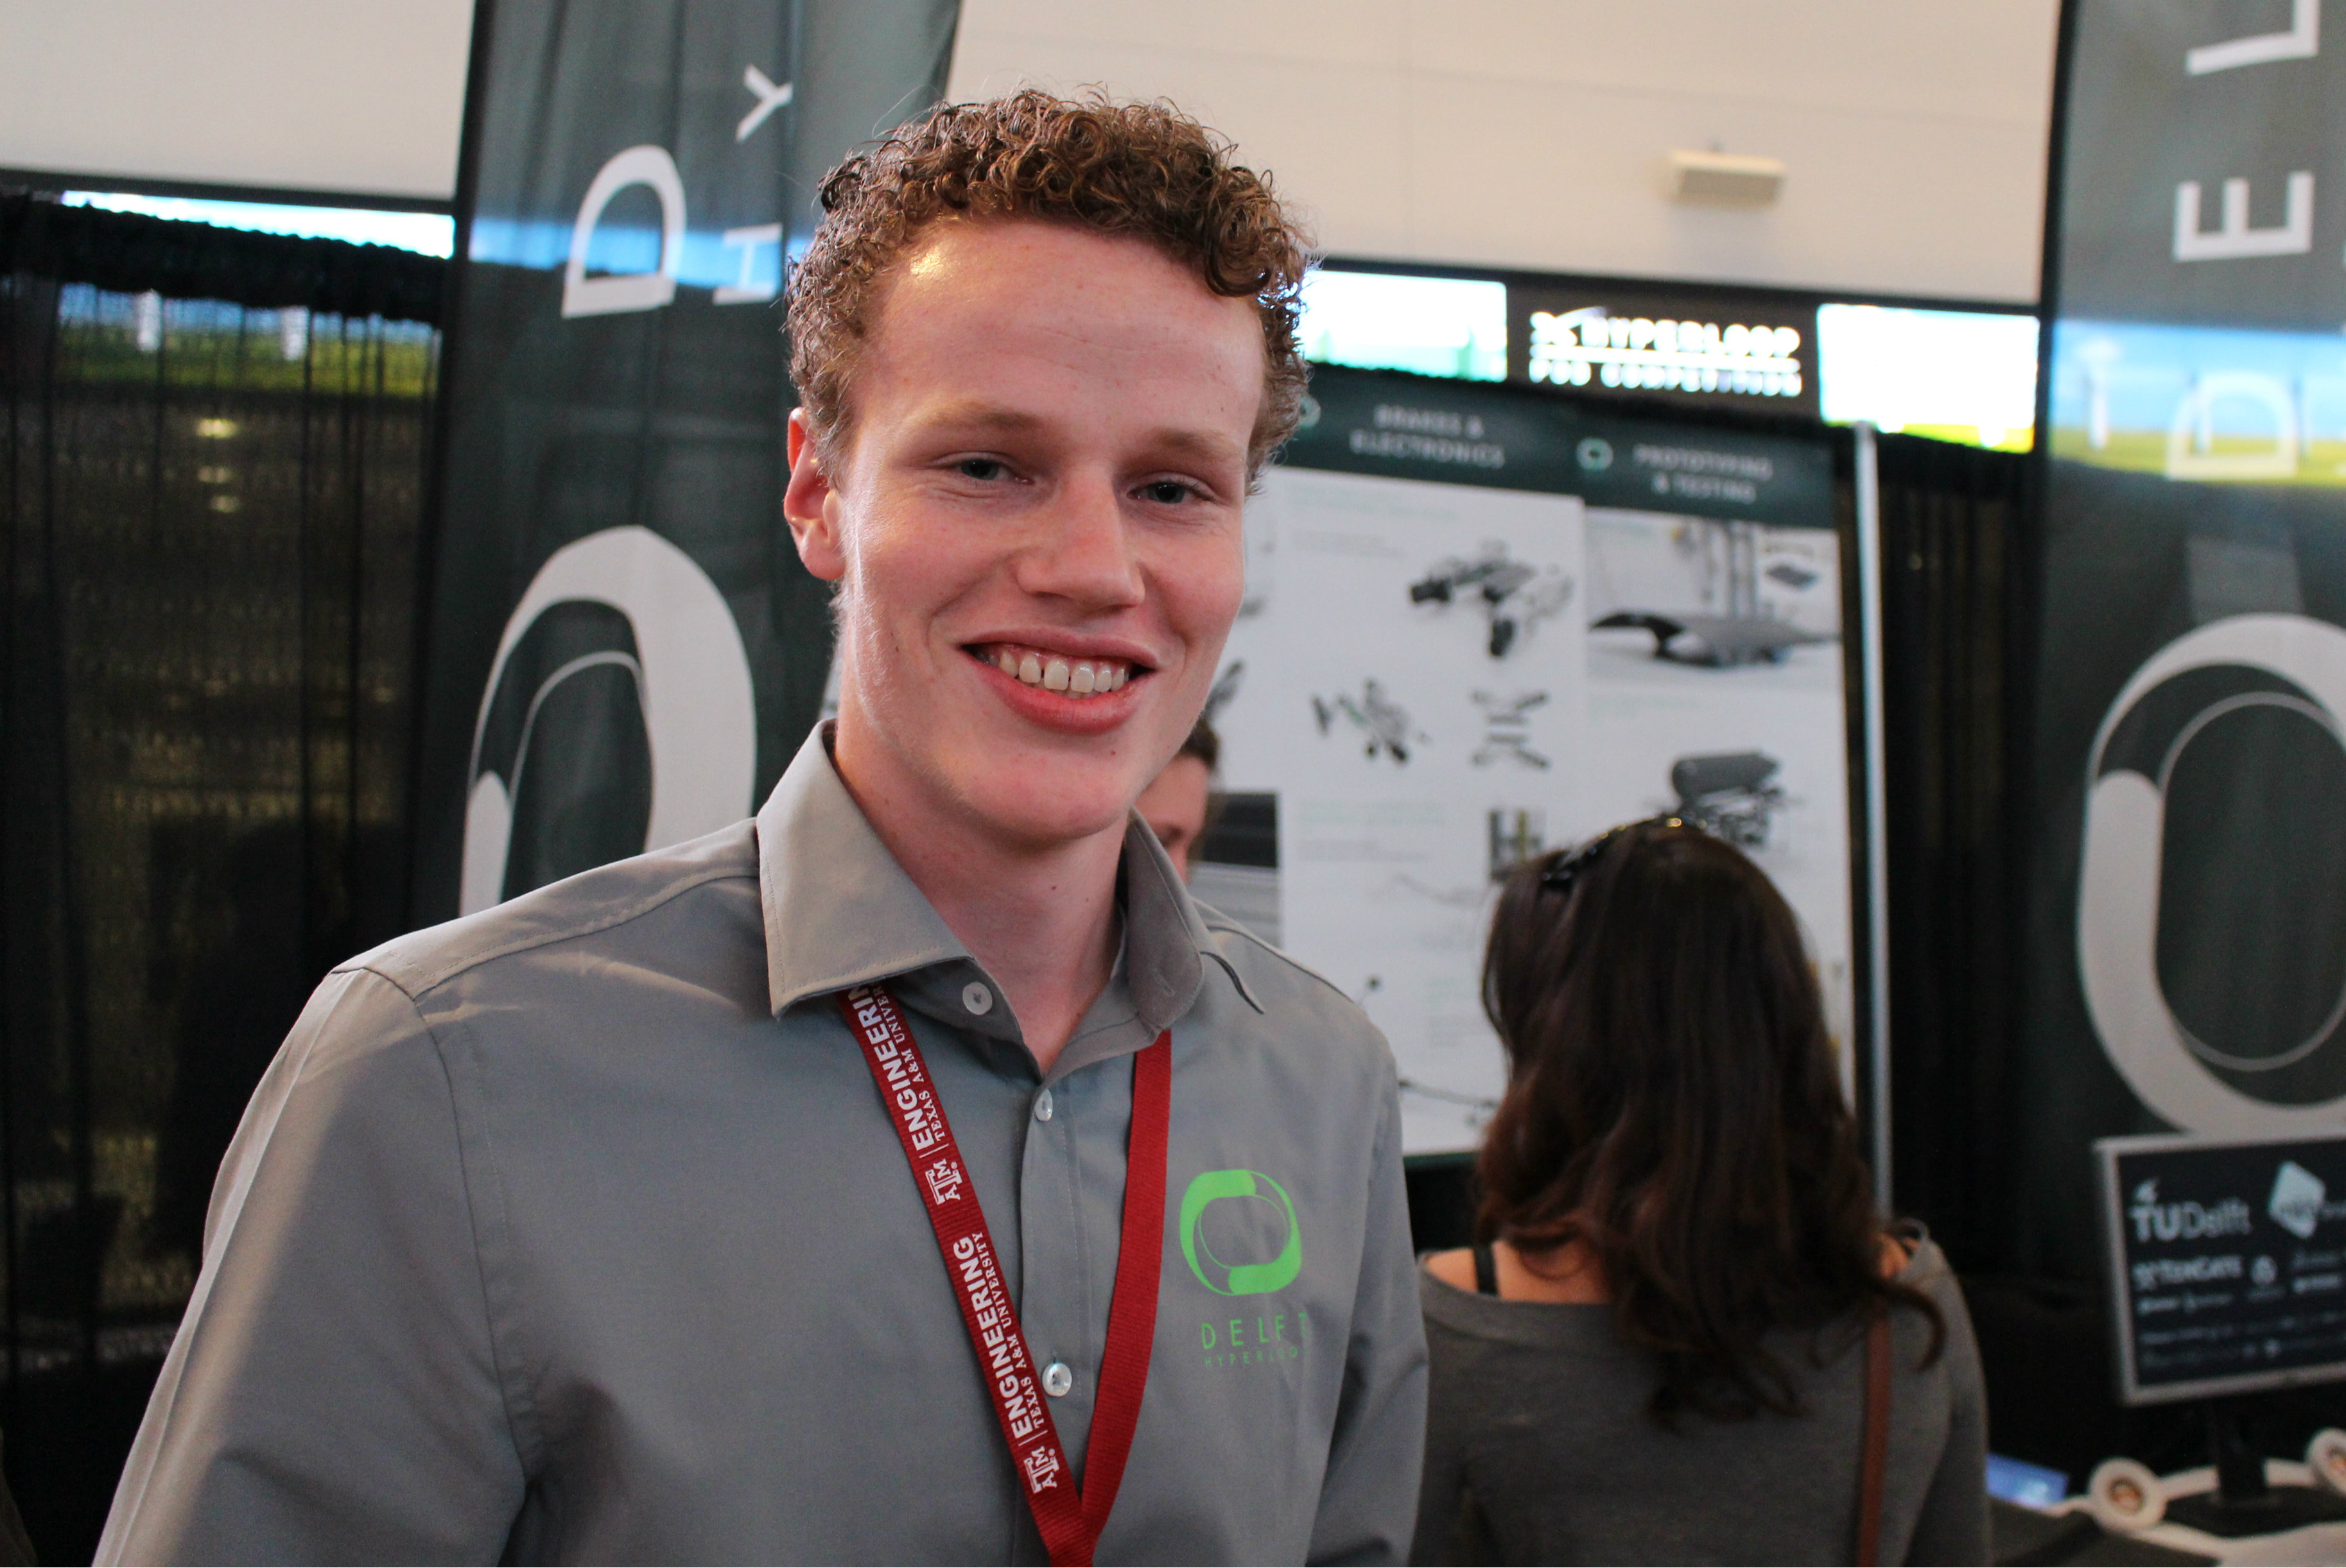 Quint Houwink, a 19-year-old from the Netherlands, was a member of the Delft University of Technology's successful Hyperloop team.